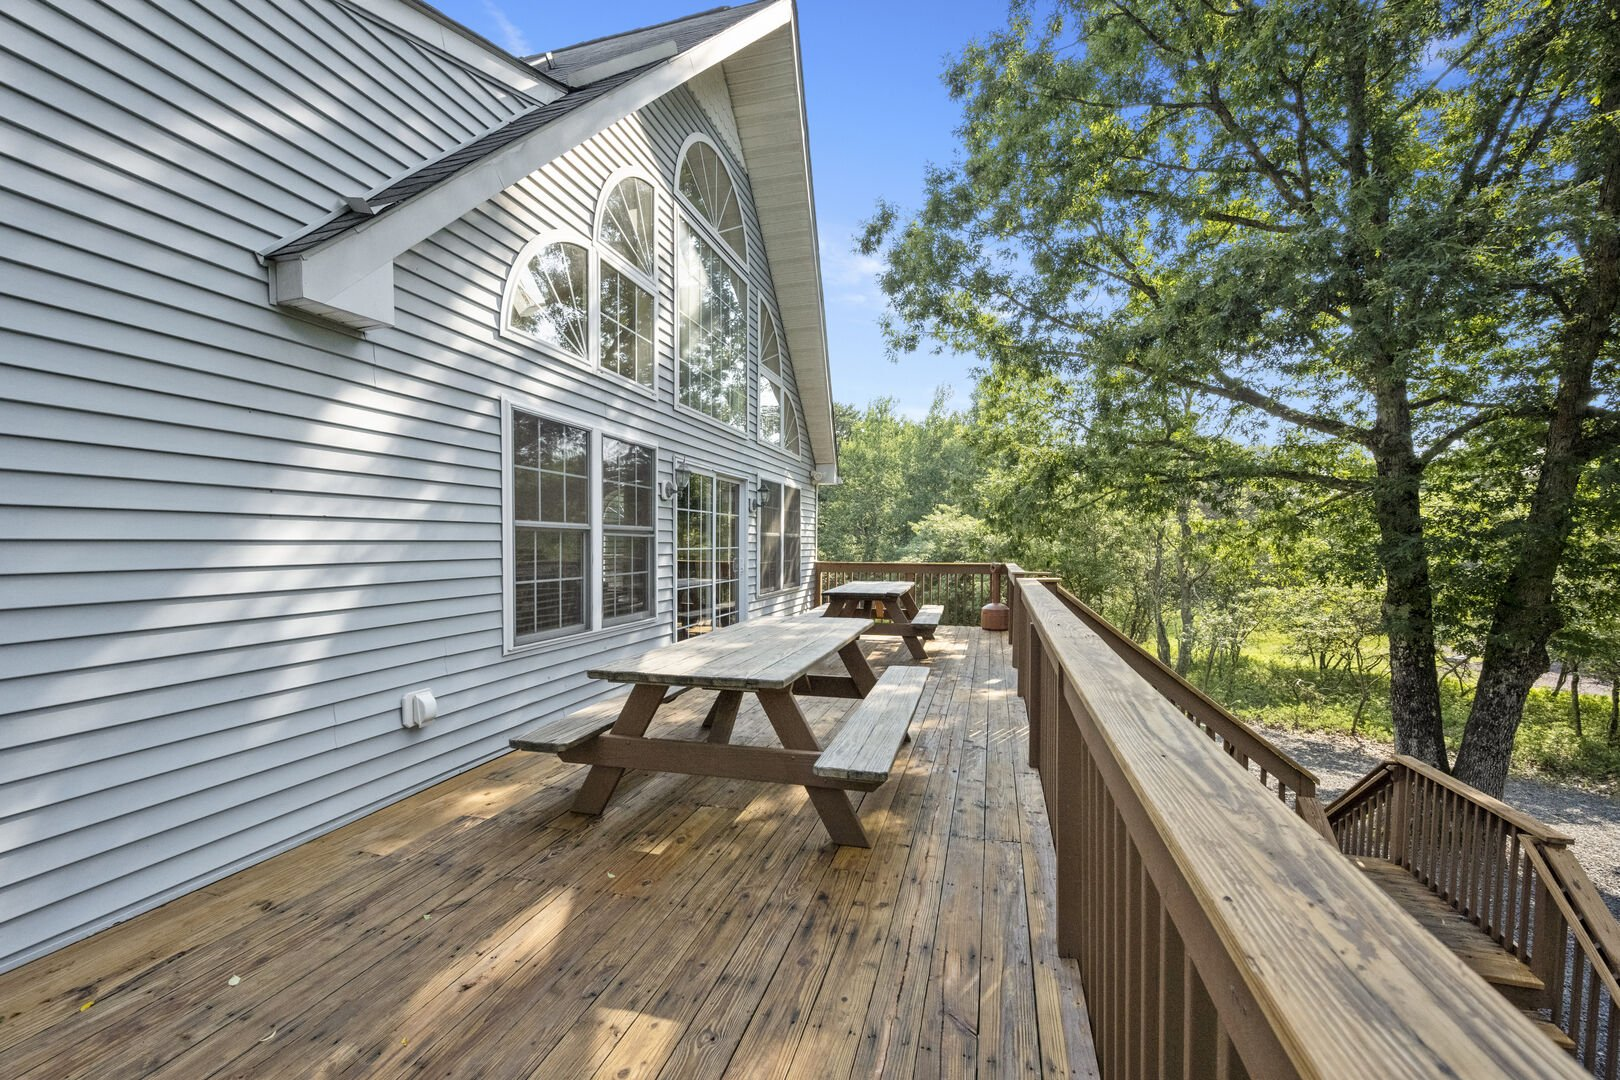 Deck with Benches and Door to Great Room